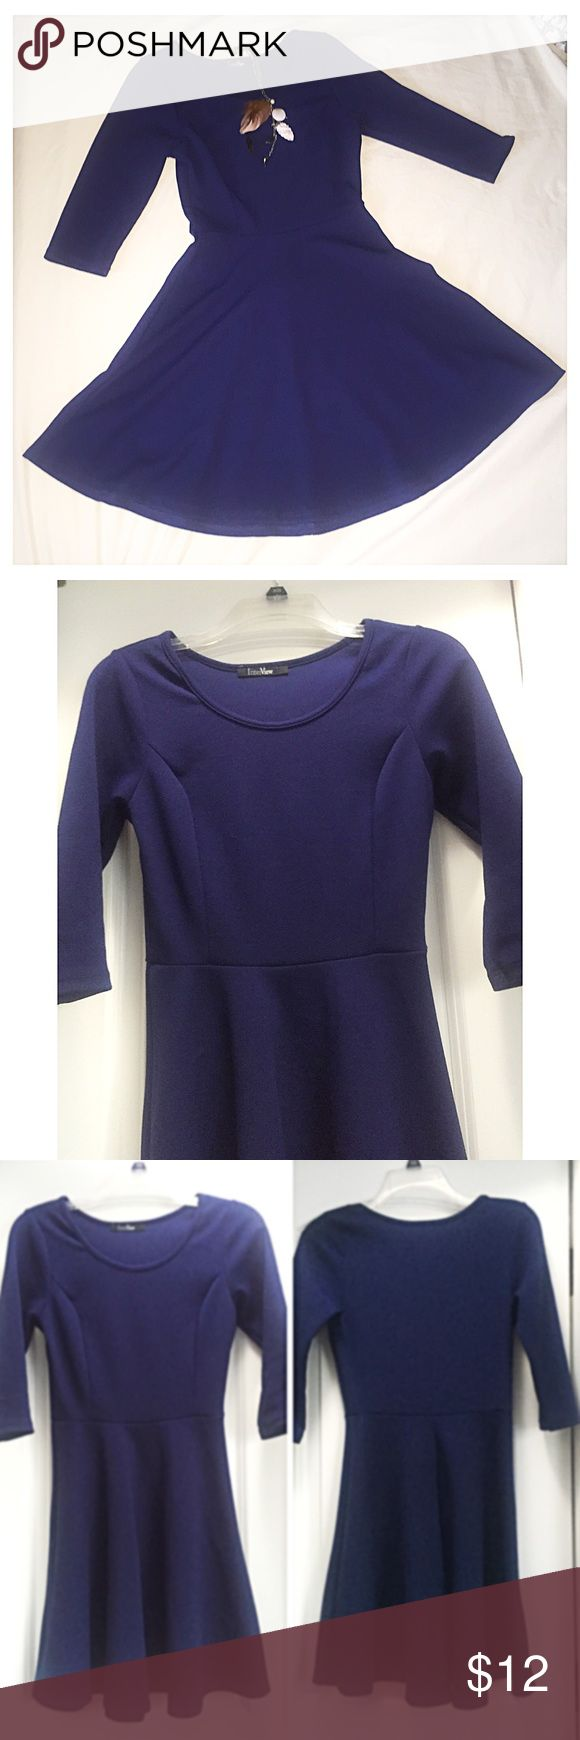 Navy skater dress Navy skater dress, half sleeve. Size: S. Condition: like new. About 85cm long. Sorry, no trades. Like the item but not the price, feel free to make me a reasonable offer using the offer button below. Charlotte Russe Dresses Long Sleeve